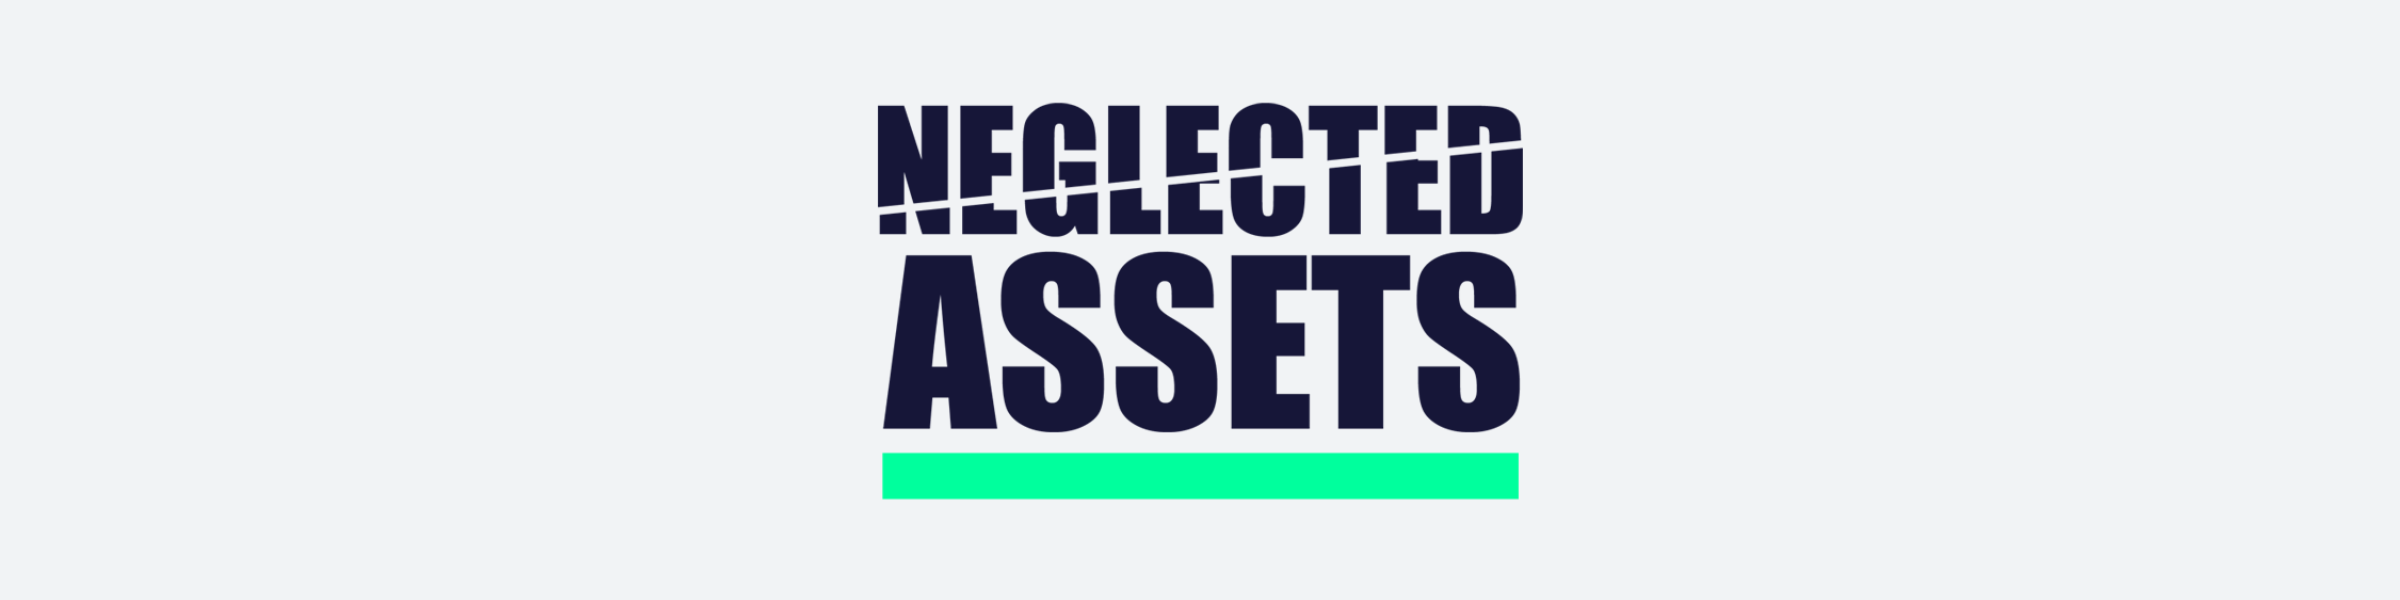 Neglected Assets Press Release